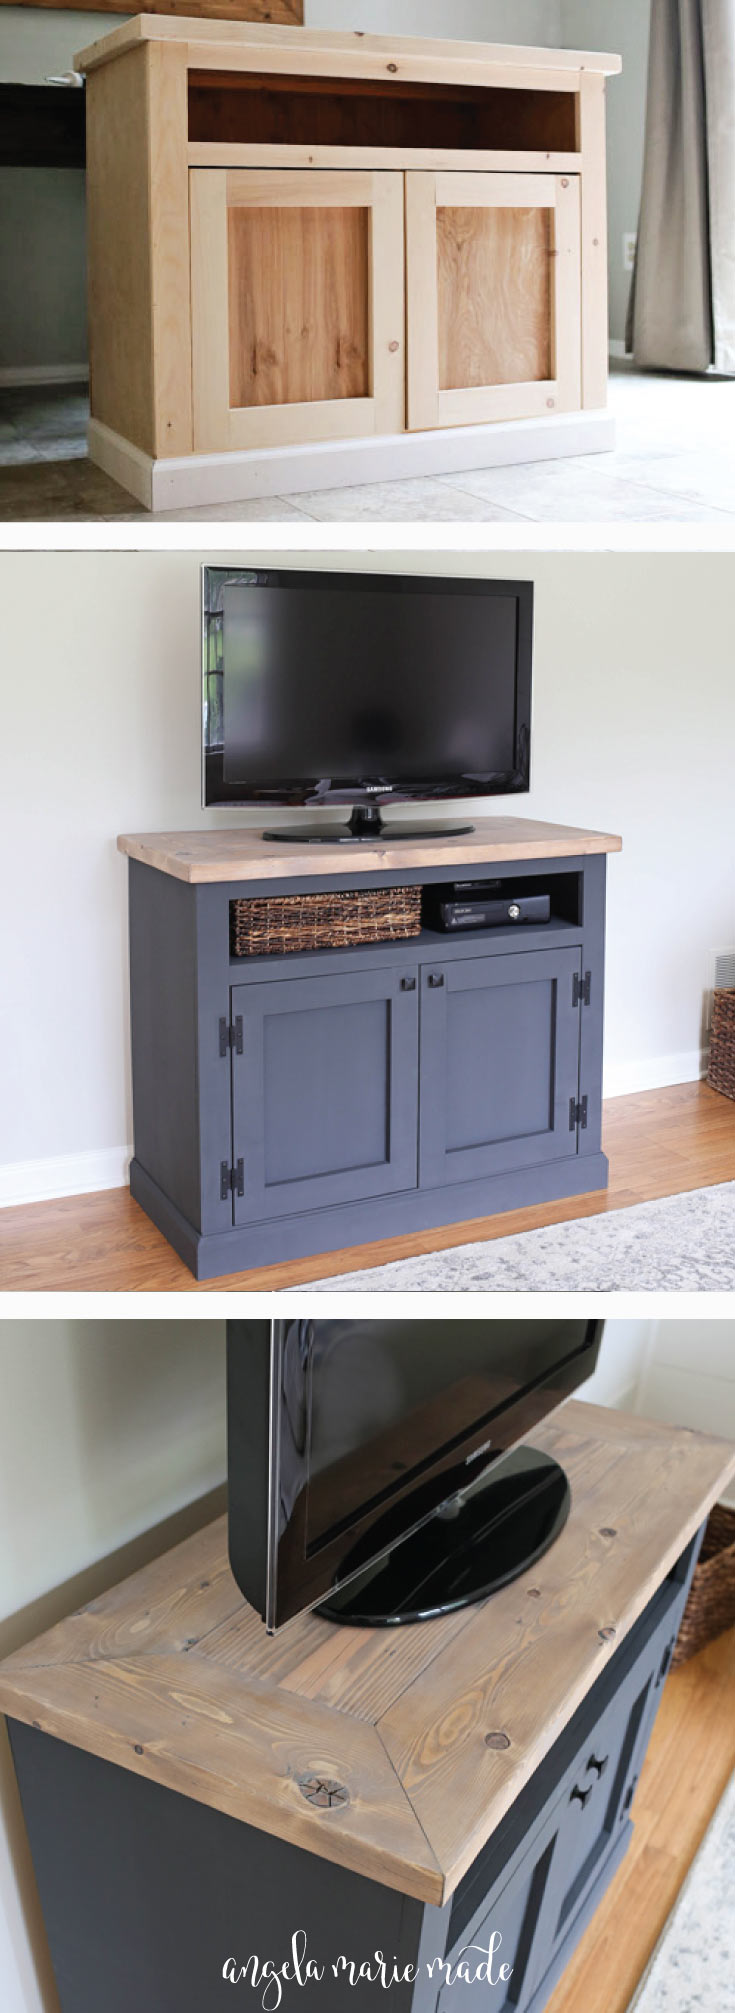 DIY Rustic TV Stand with a weathered wood finish